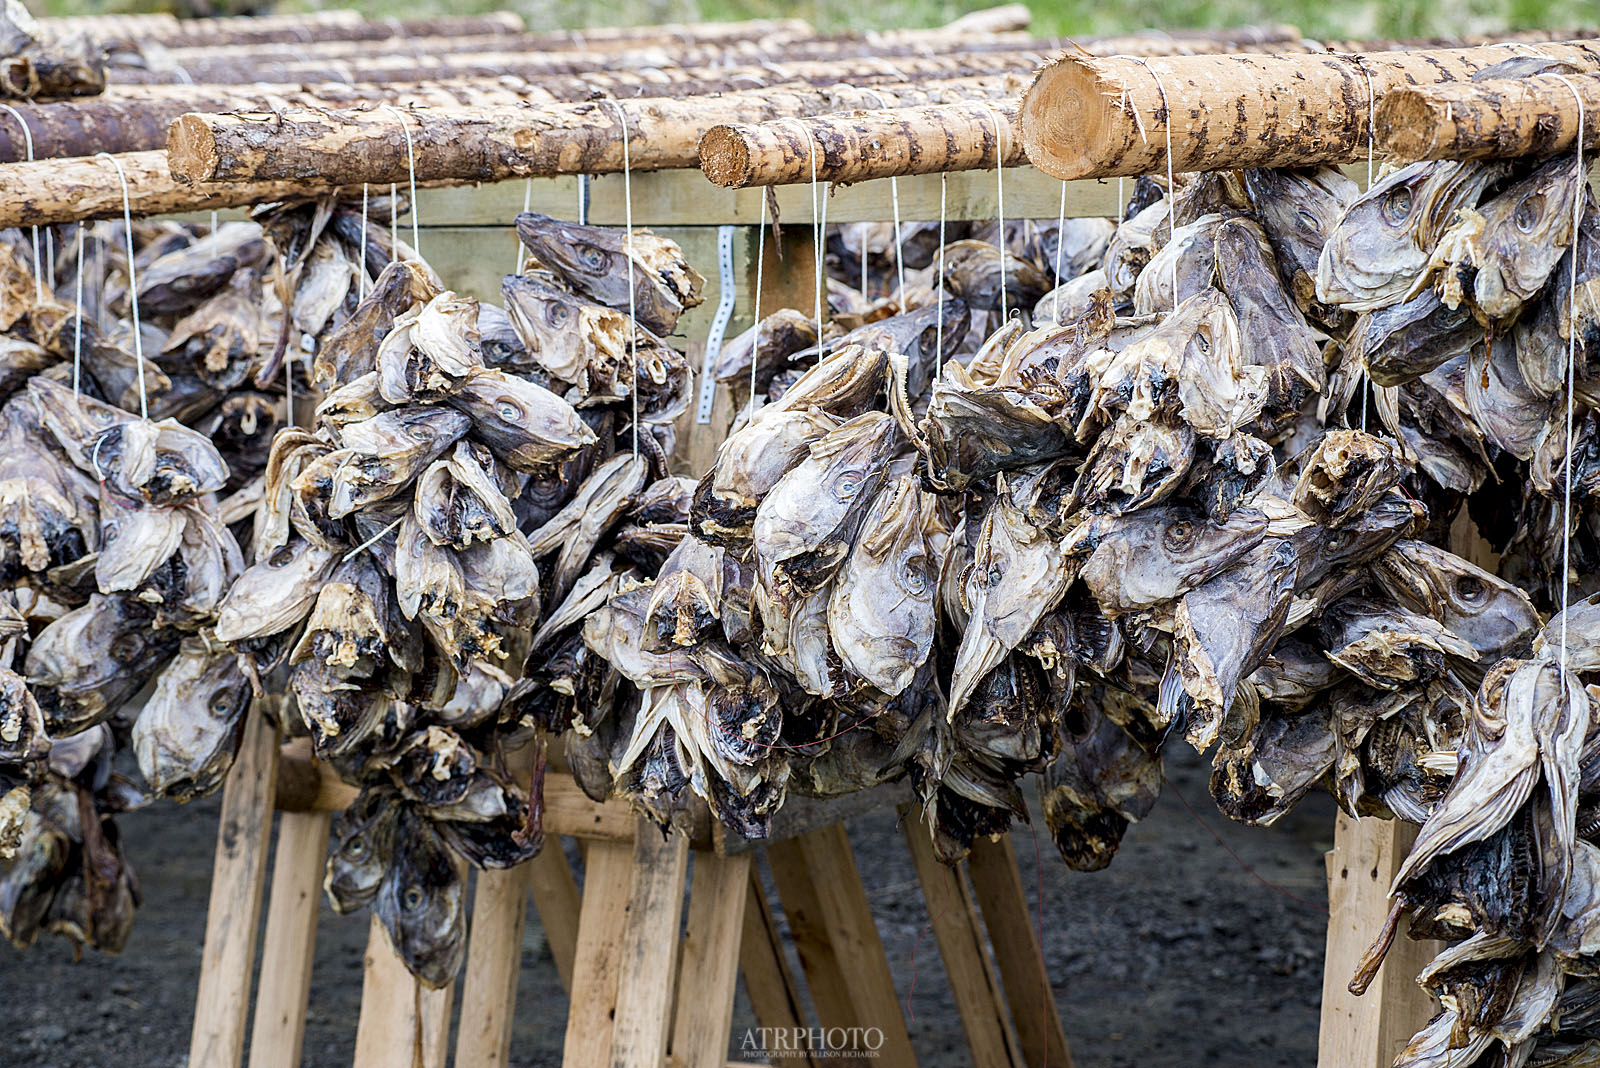 Stockfish are left out to dry in the arctic winds and sea air for 2-3 months to preserve them. The heads and bodies are dried separately. Stockfish are Norway's longest standing export commodity.